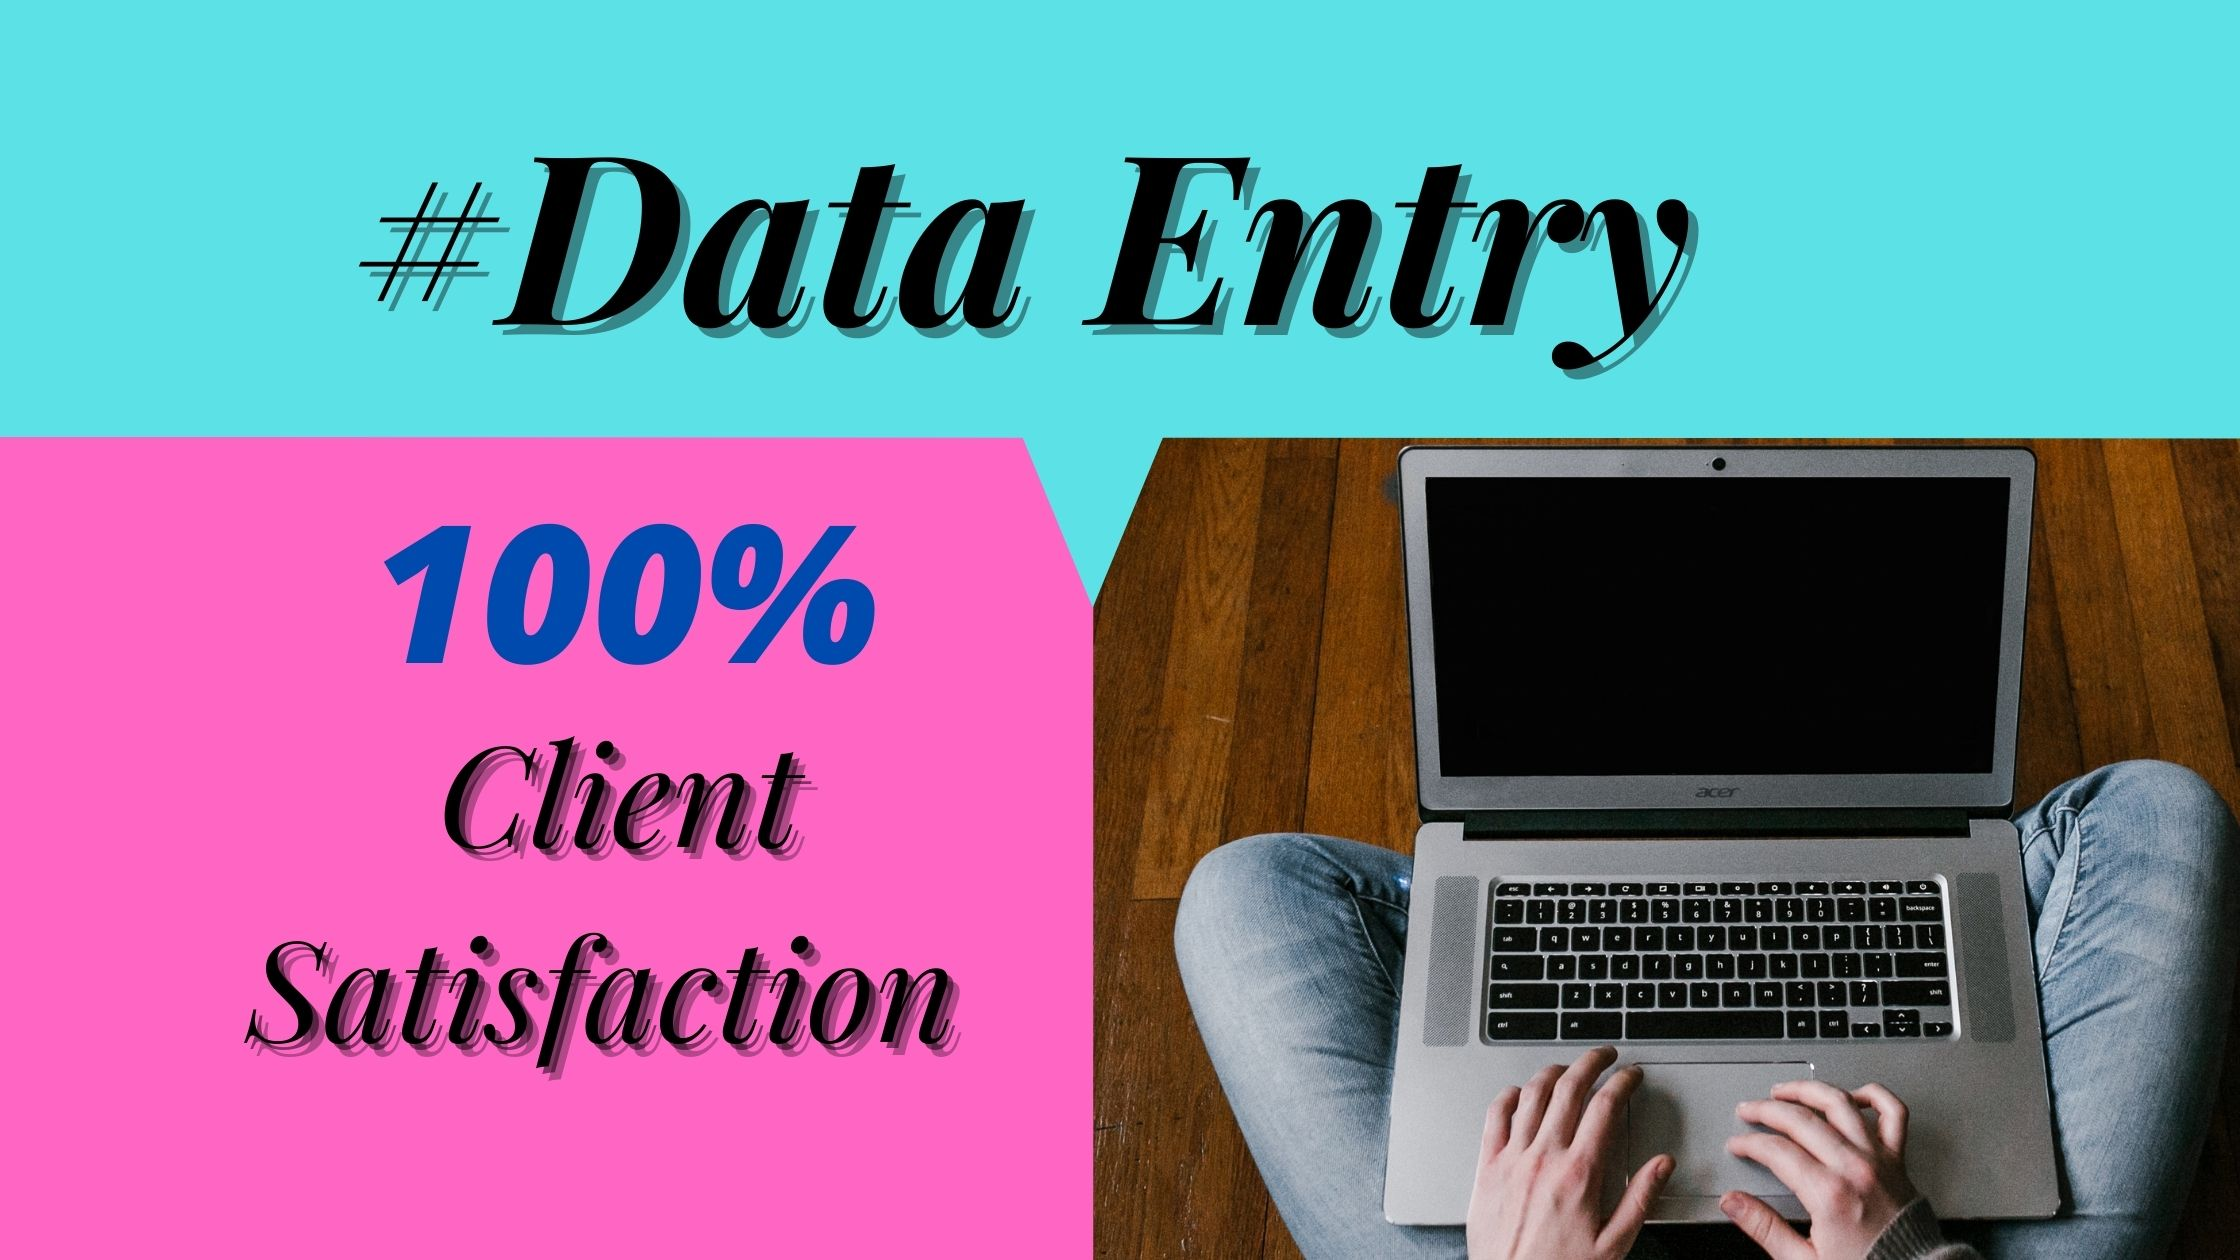 We will do excel data entry,  copy paste and web research